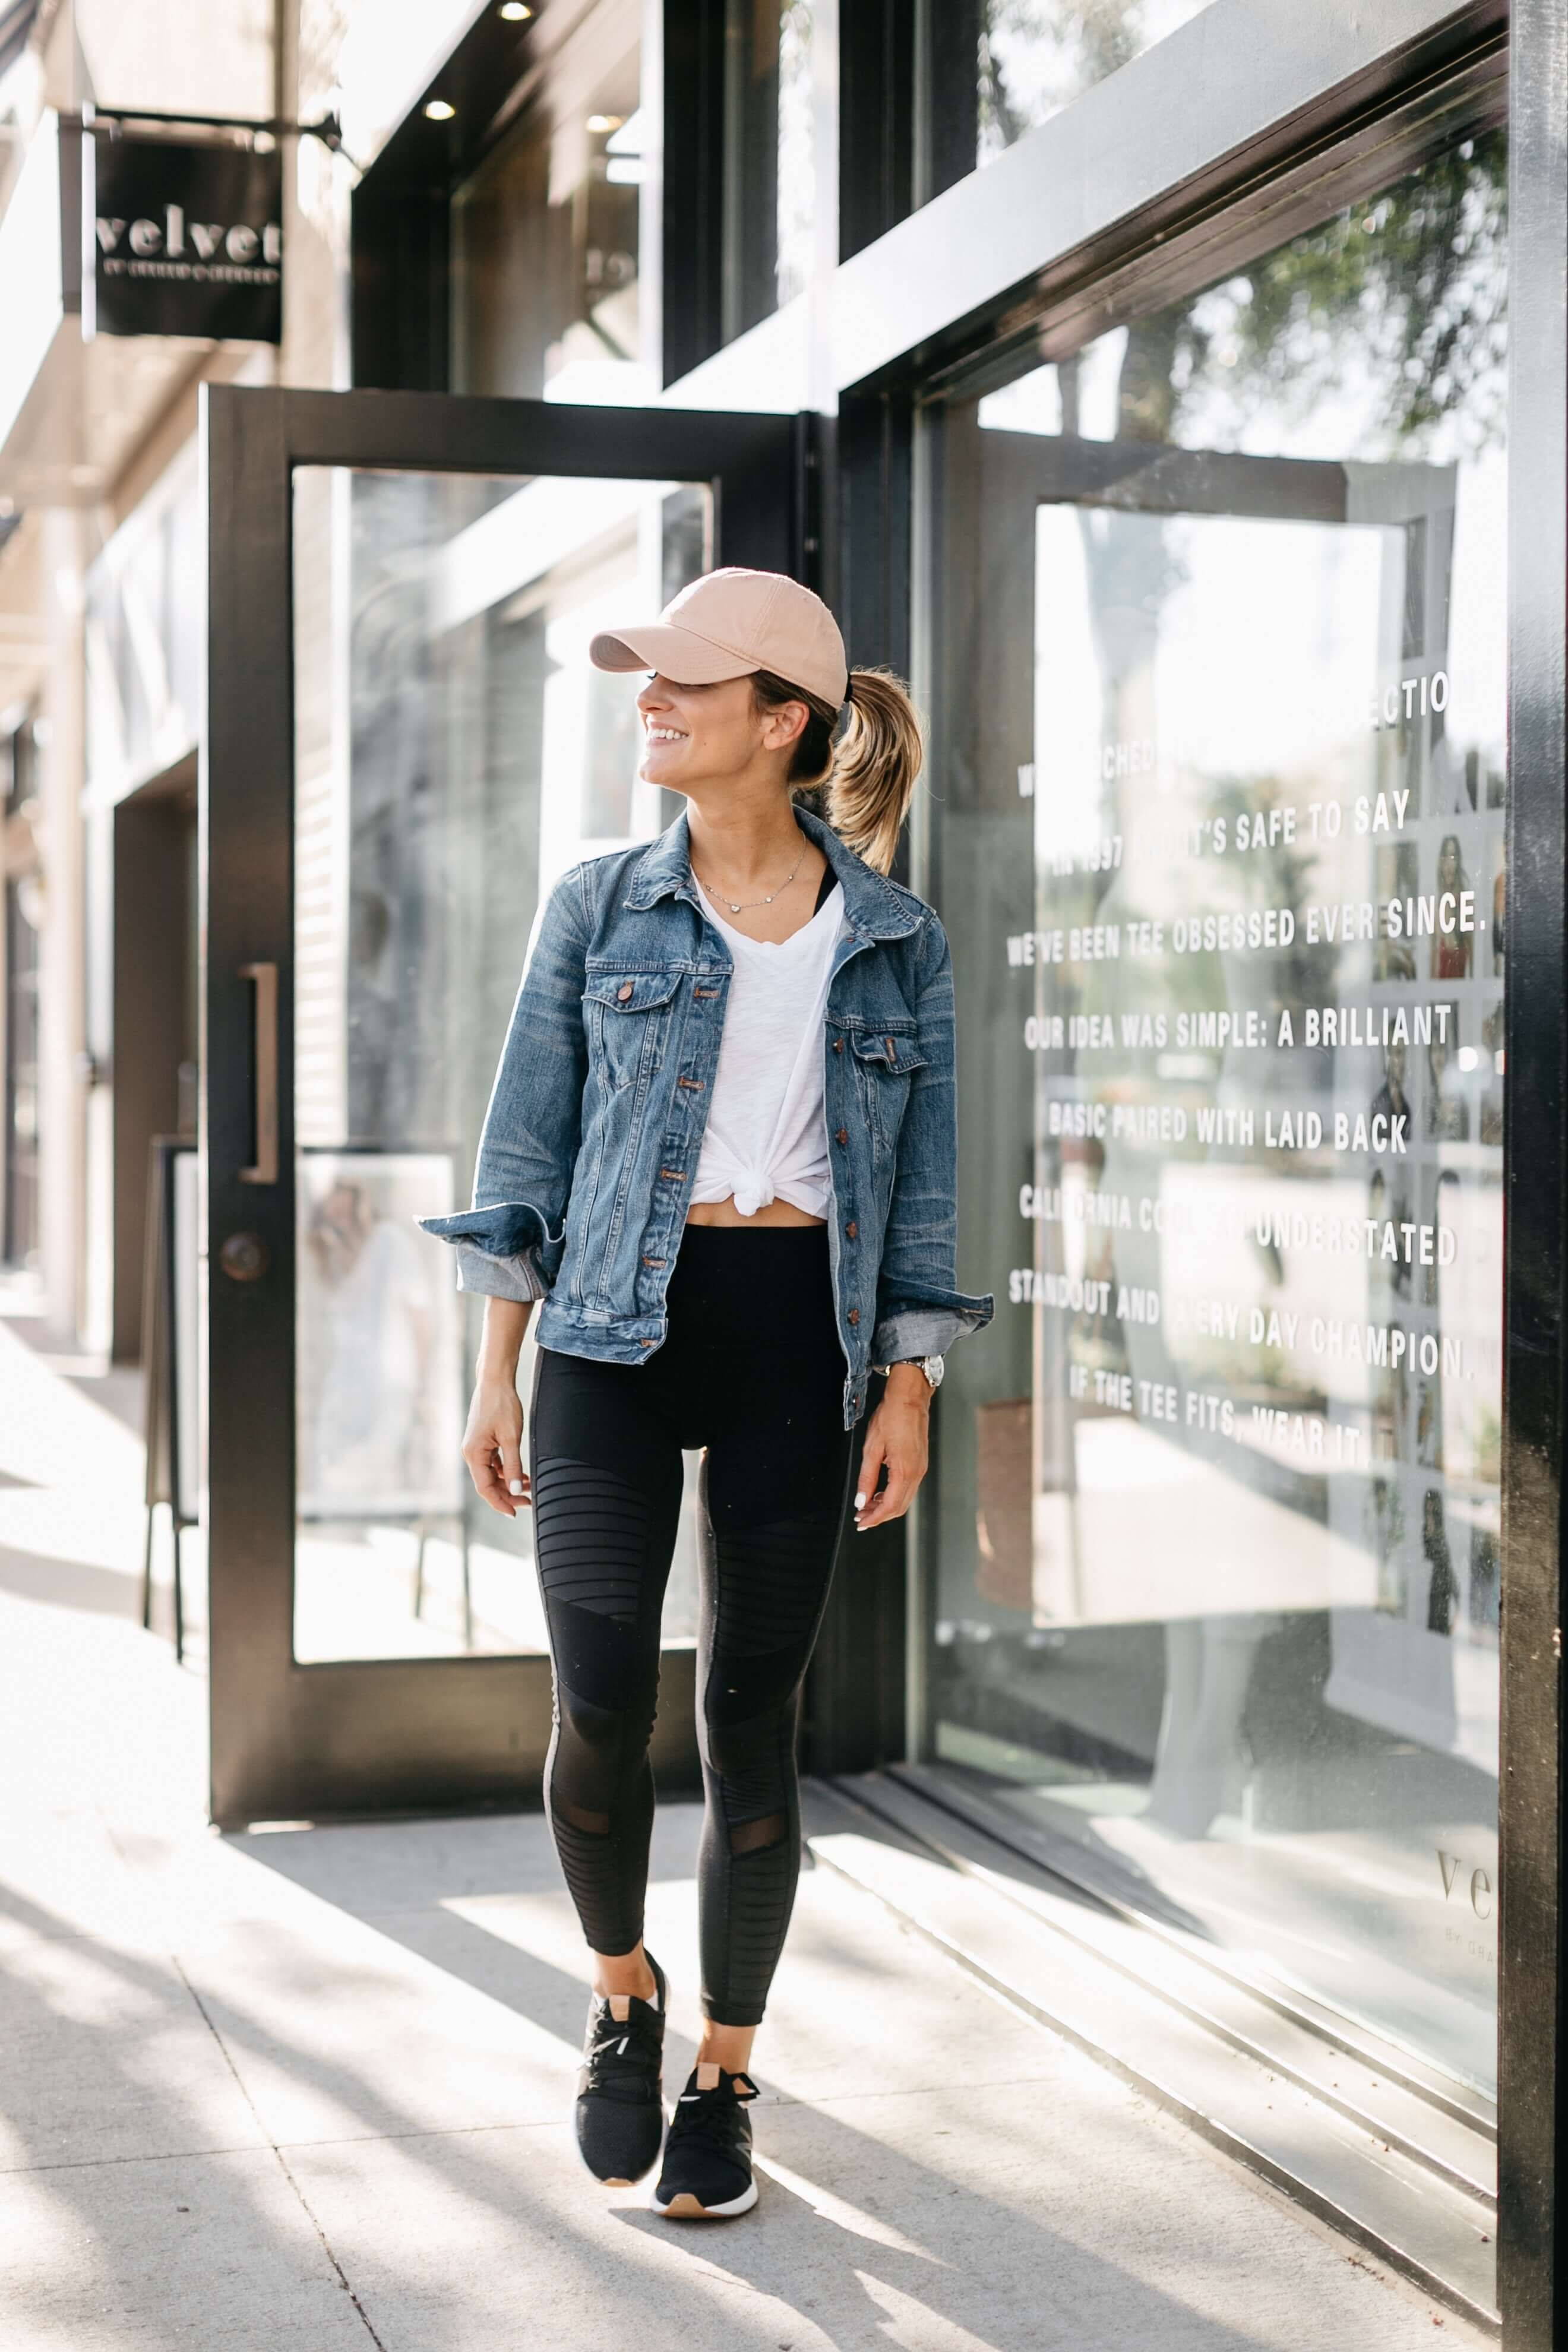 fcdd9a66e8e How To Wear A Bralette  6 Easy Ways To Style A Bralette  fashion